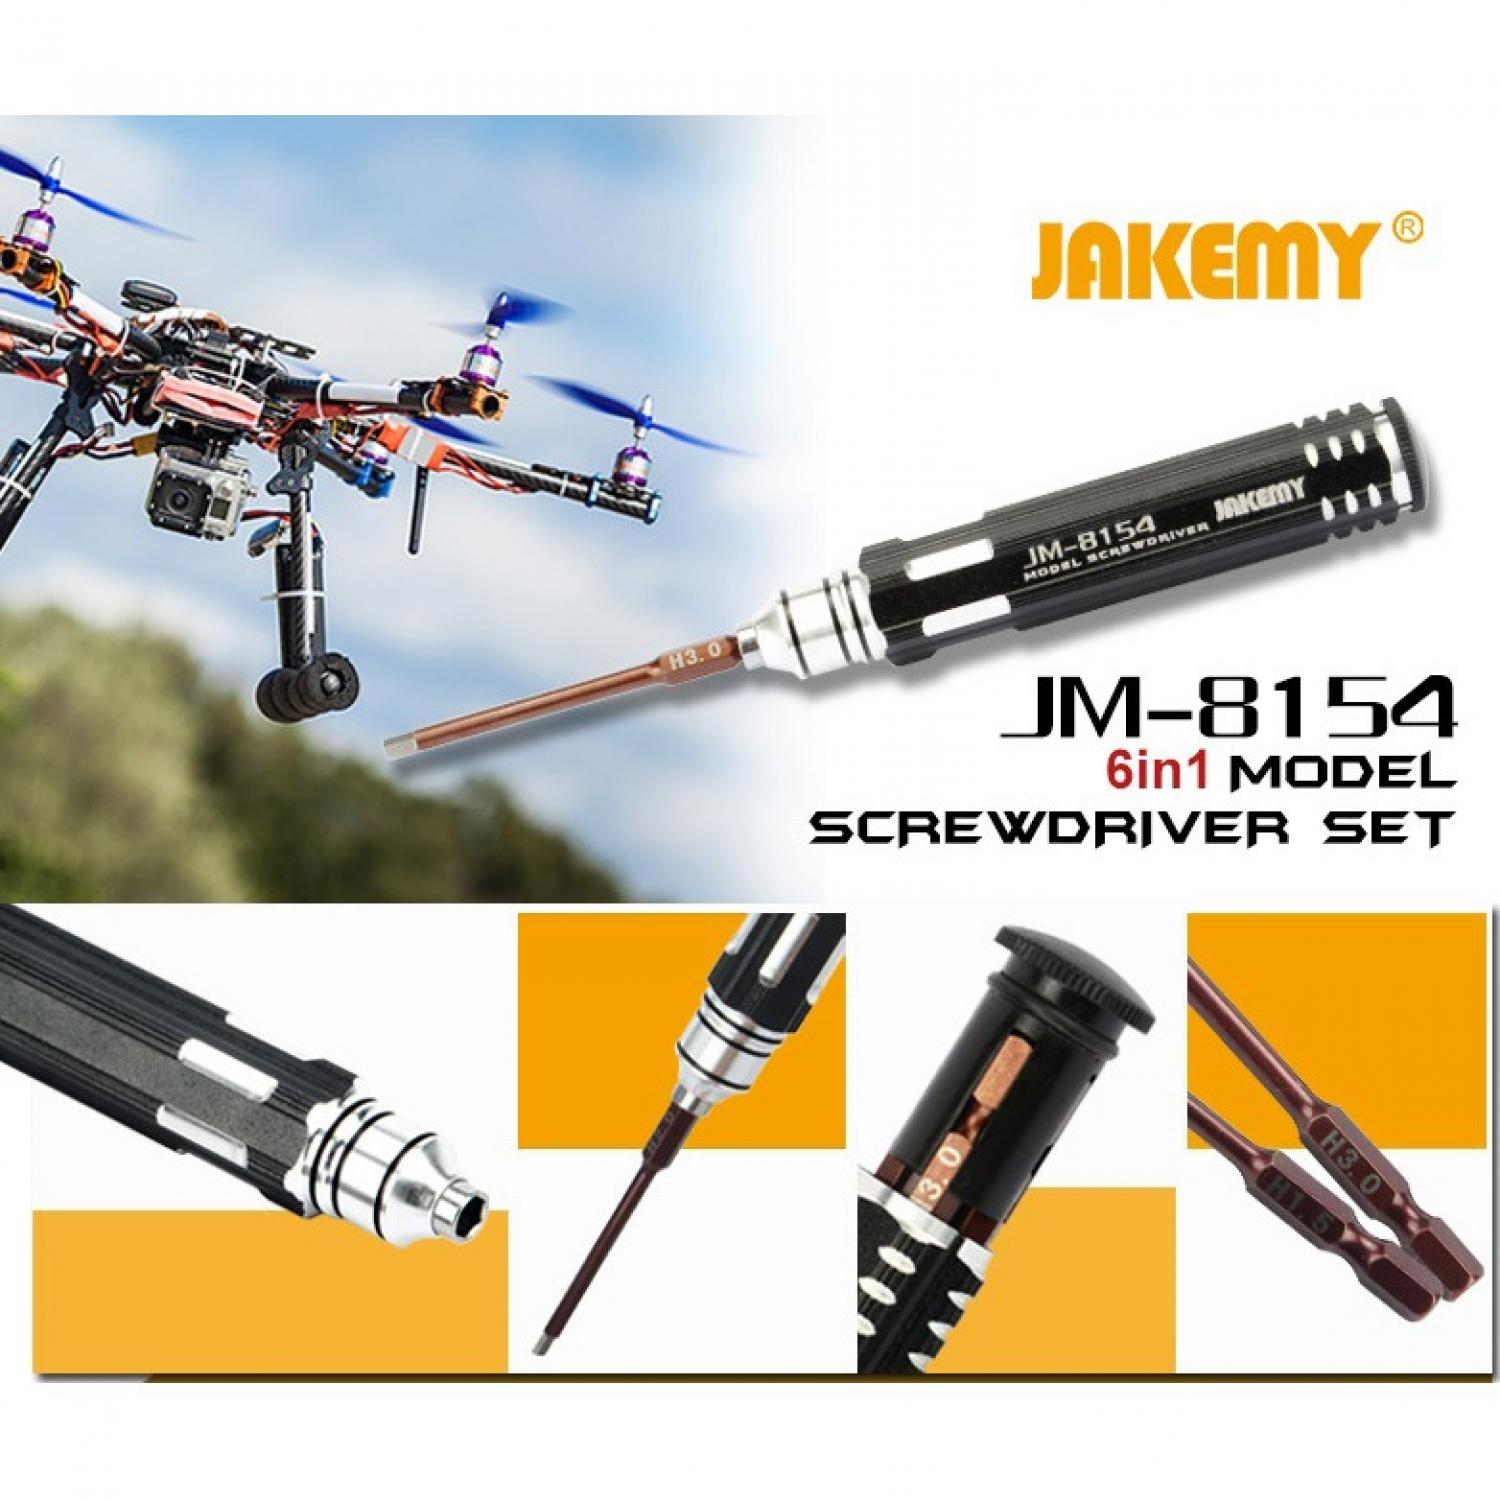 Jakemy 6 in 1 Screwdriver Kit Model - JM-8154